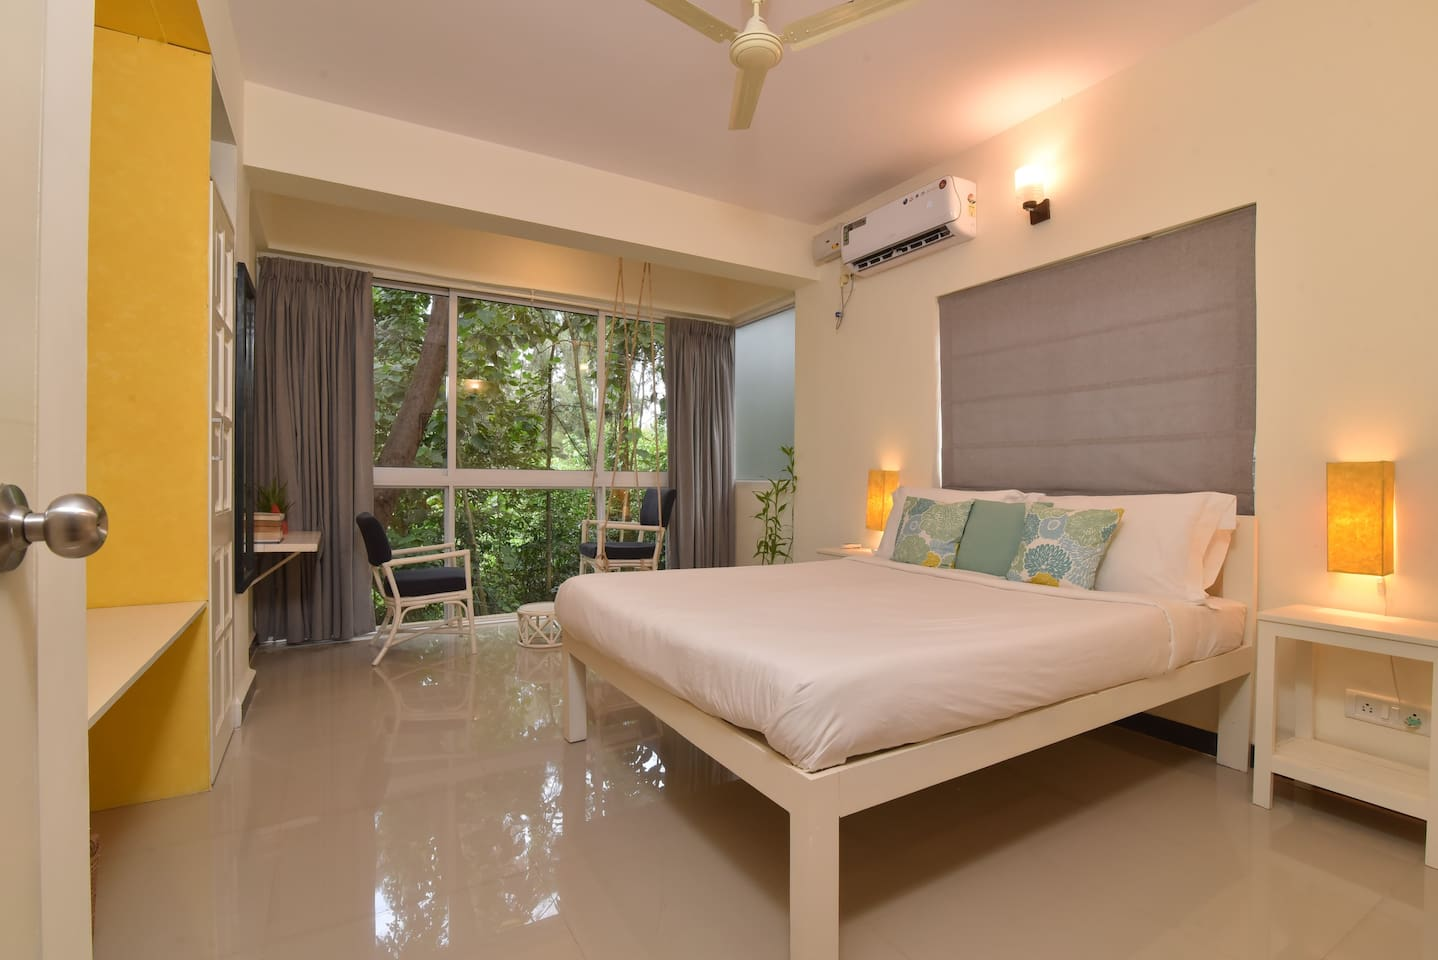 Relax and rejuvenate in the bedroom with full glass windows looking out upon lush green forest.